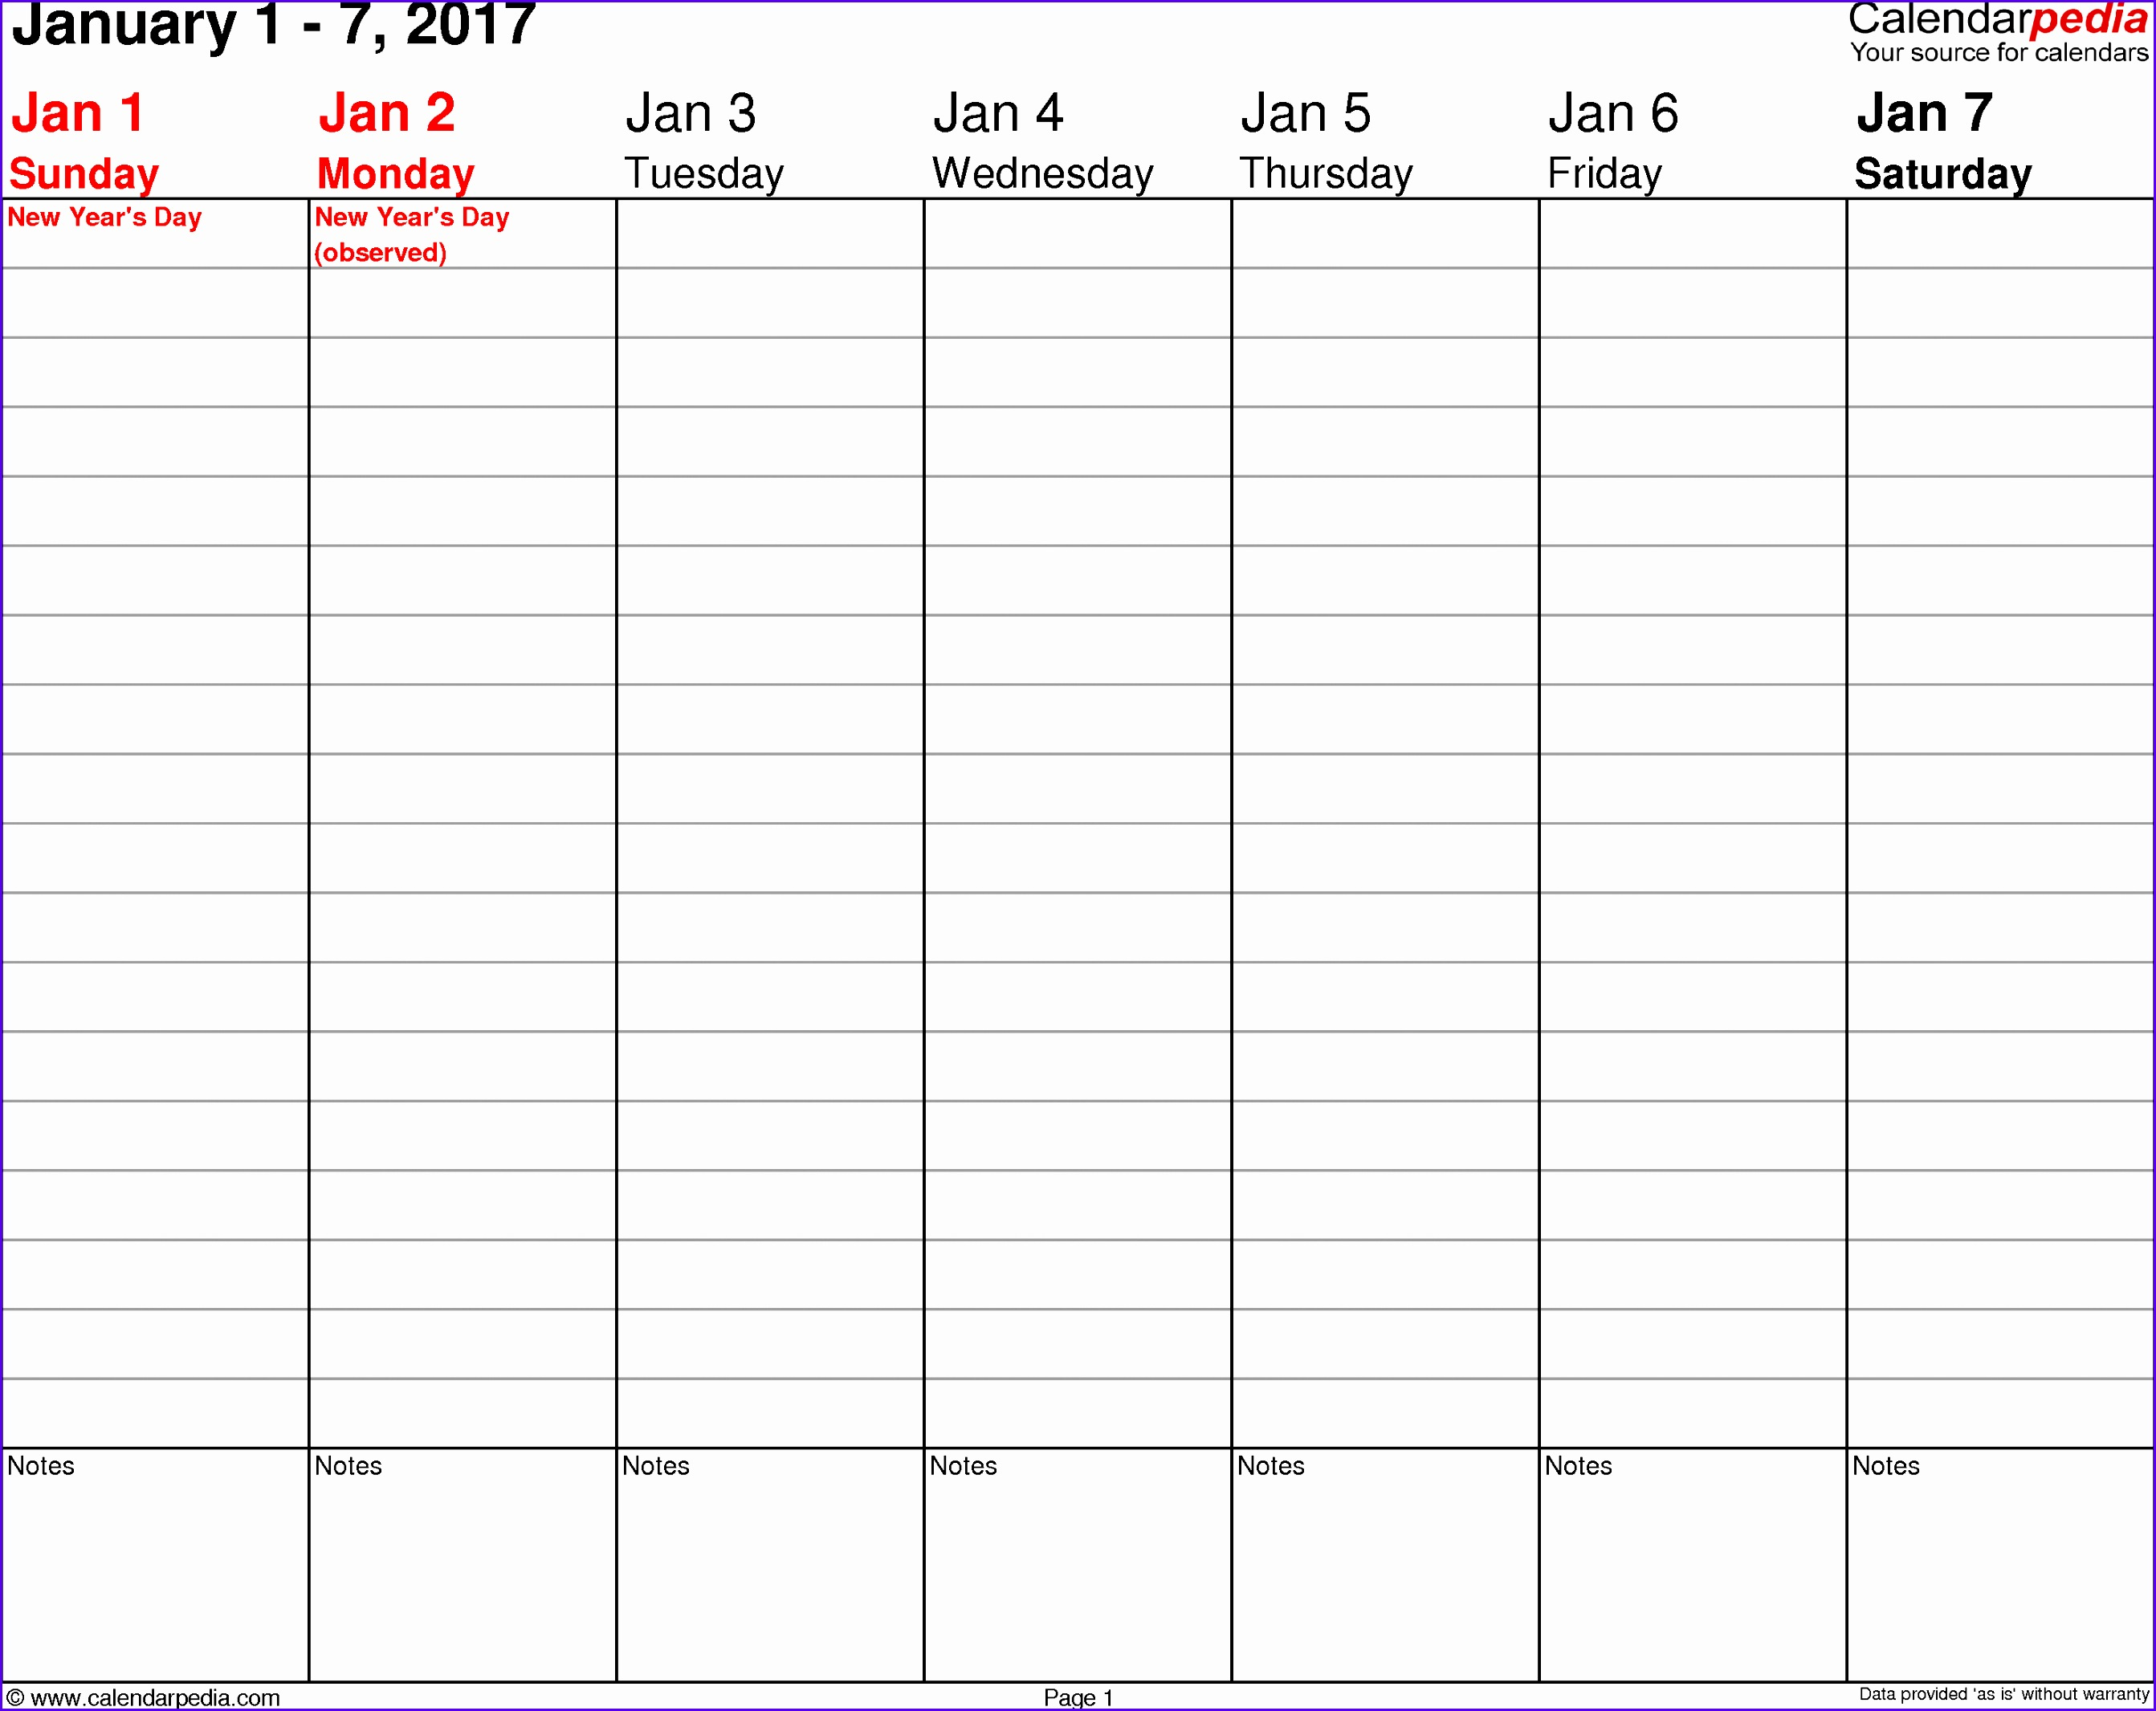 Weekly calendar 2017 template for Excel version 3 landscape 53 pages no